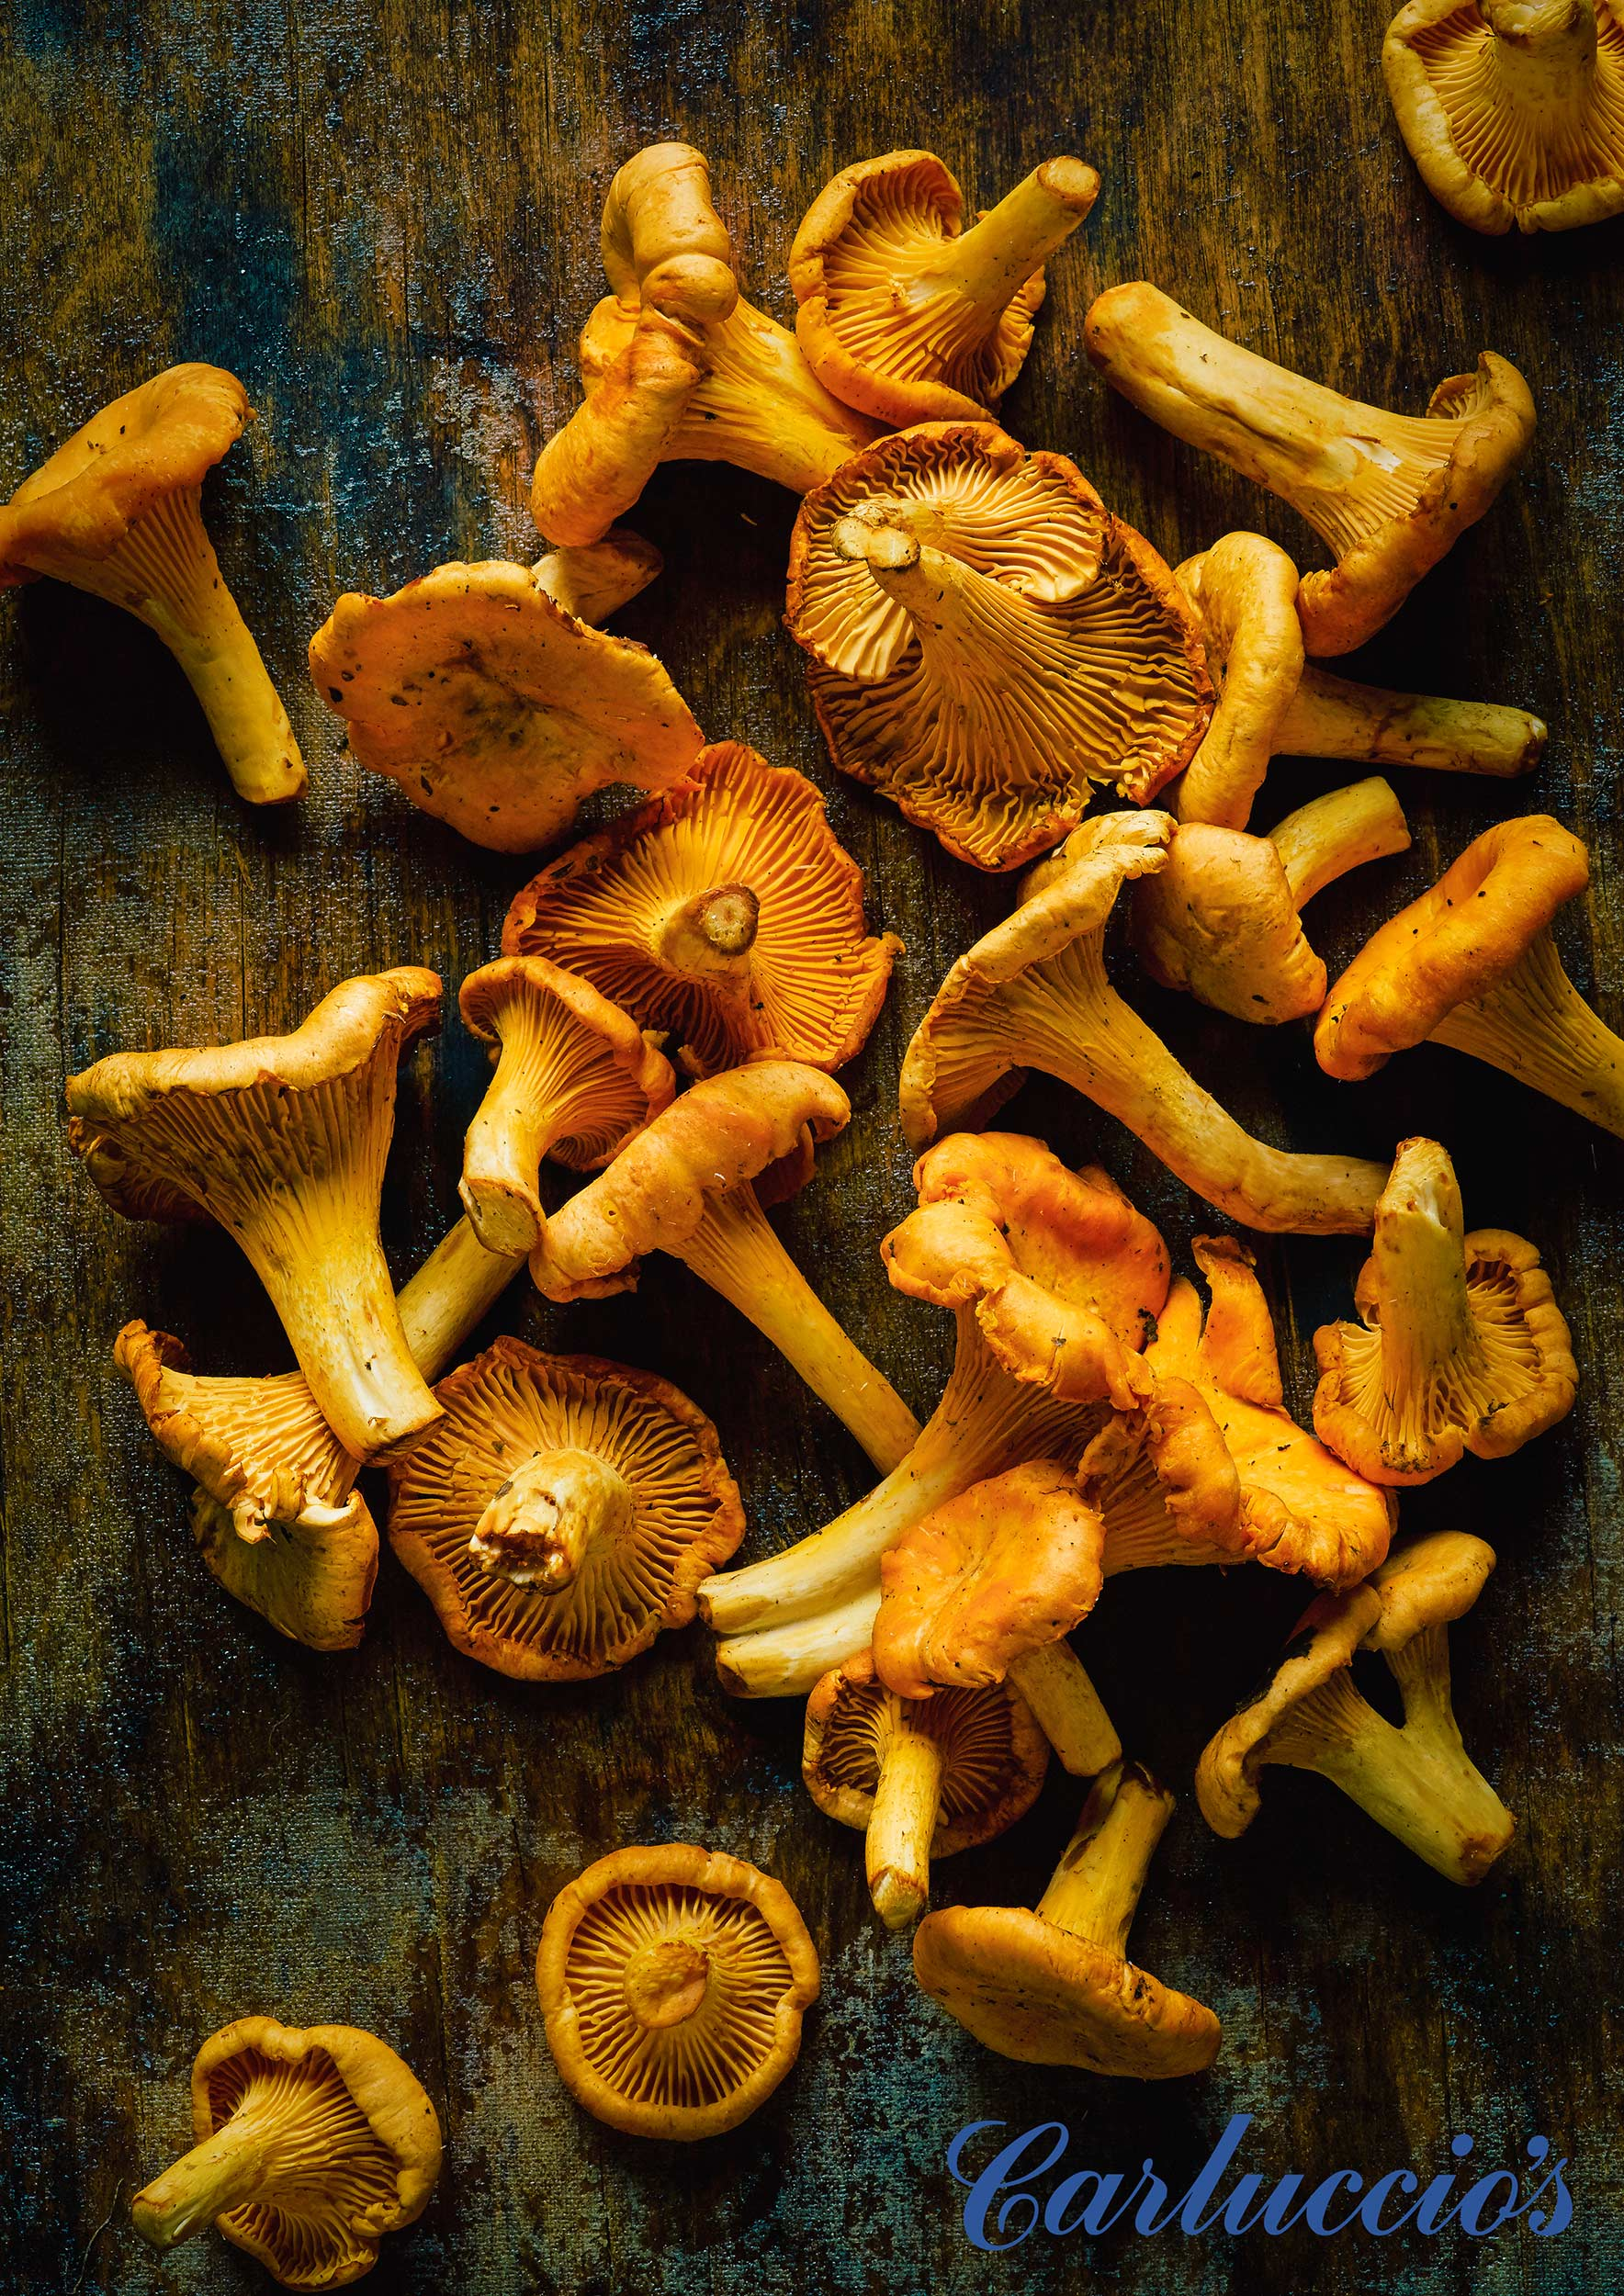 Carluccios-Autumn-Mushrooms